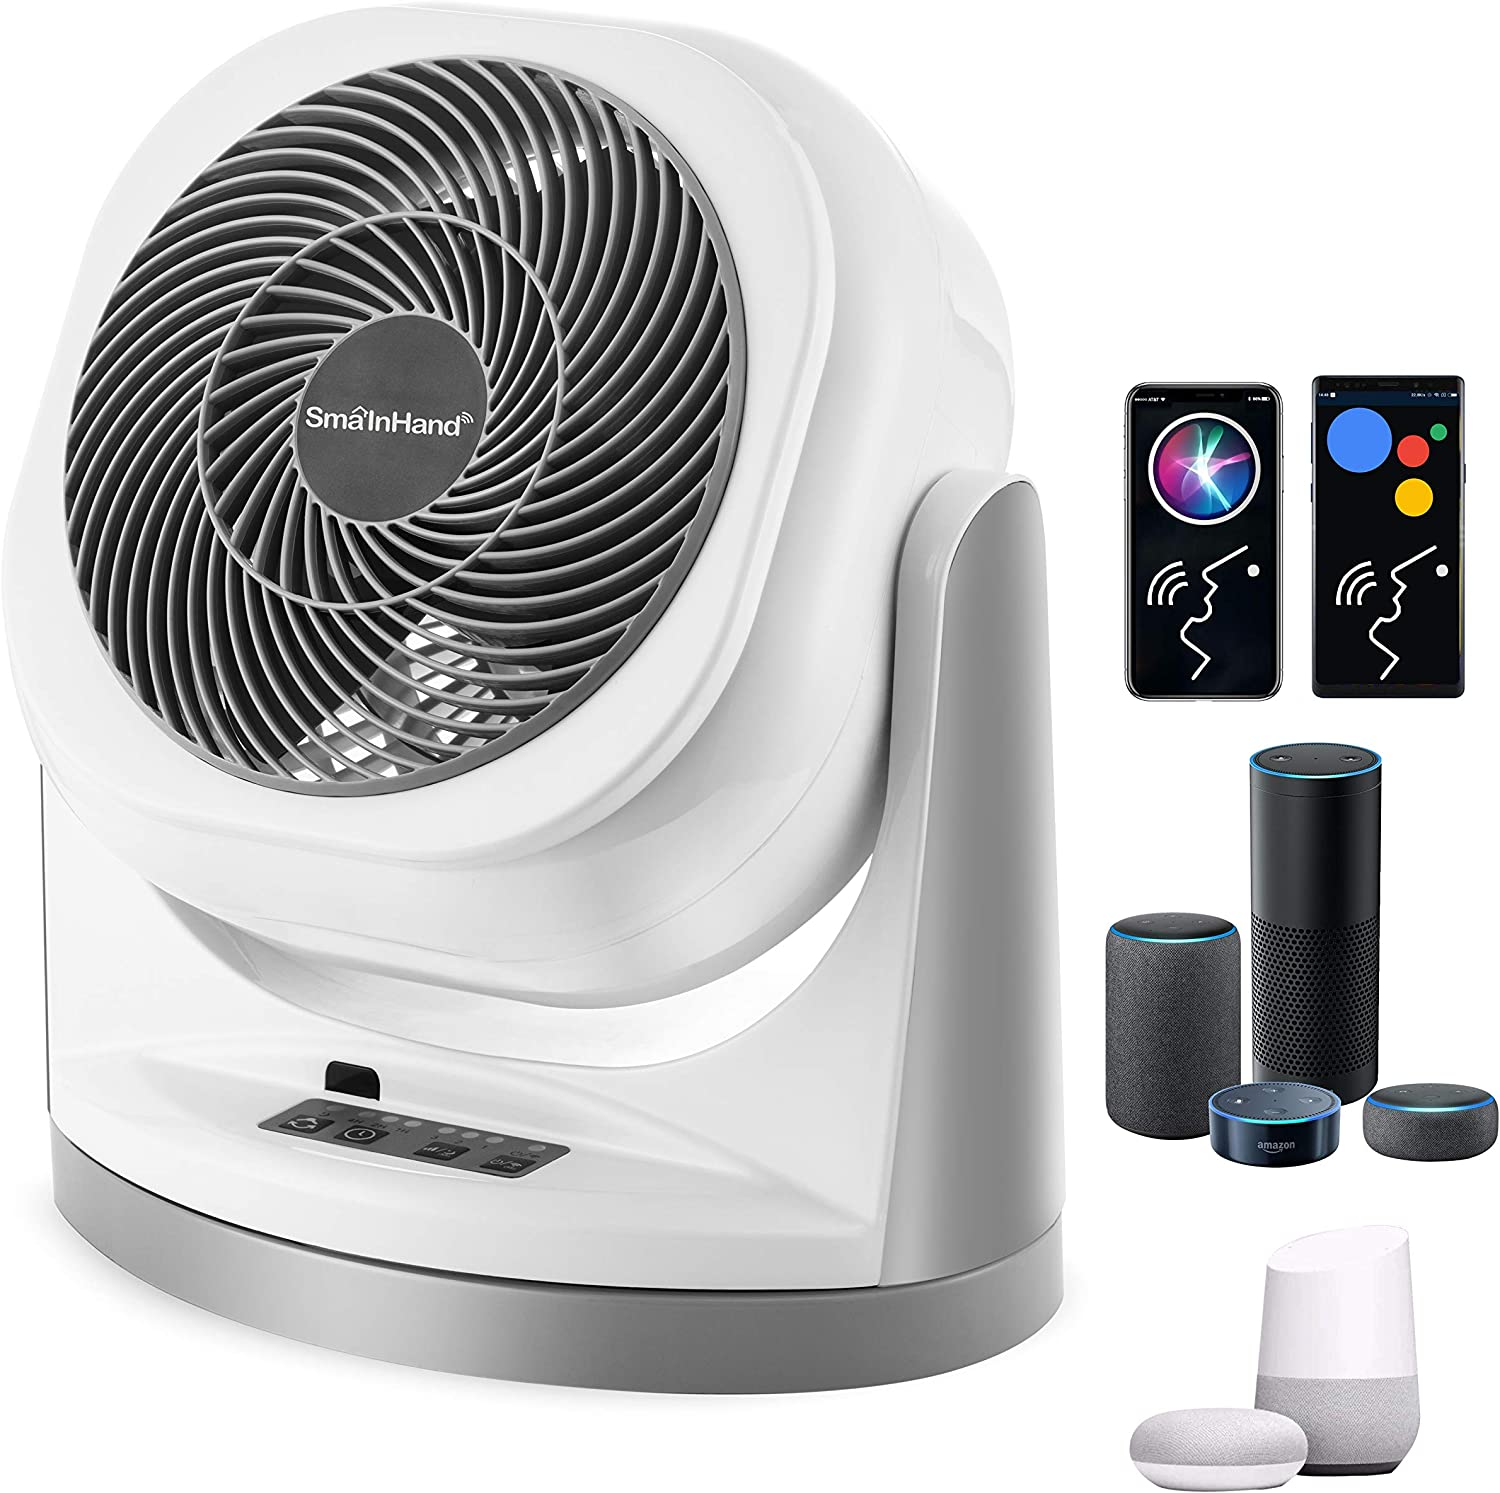 Fan, Phone Voice Control Oscillating Fan, Alexa Google Remote Control Floor Fan, WiFi Smart Bed Fans Oscillating, SmaInHand Stand Up Fans For Home, Air Circulator House Standing Fan, Box Desk Fans For Bedroom Cooling, Room Quiet Small Electric High Velocity Desktop Rotating Table AC Fan